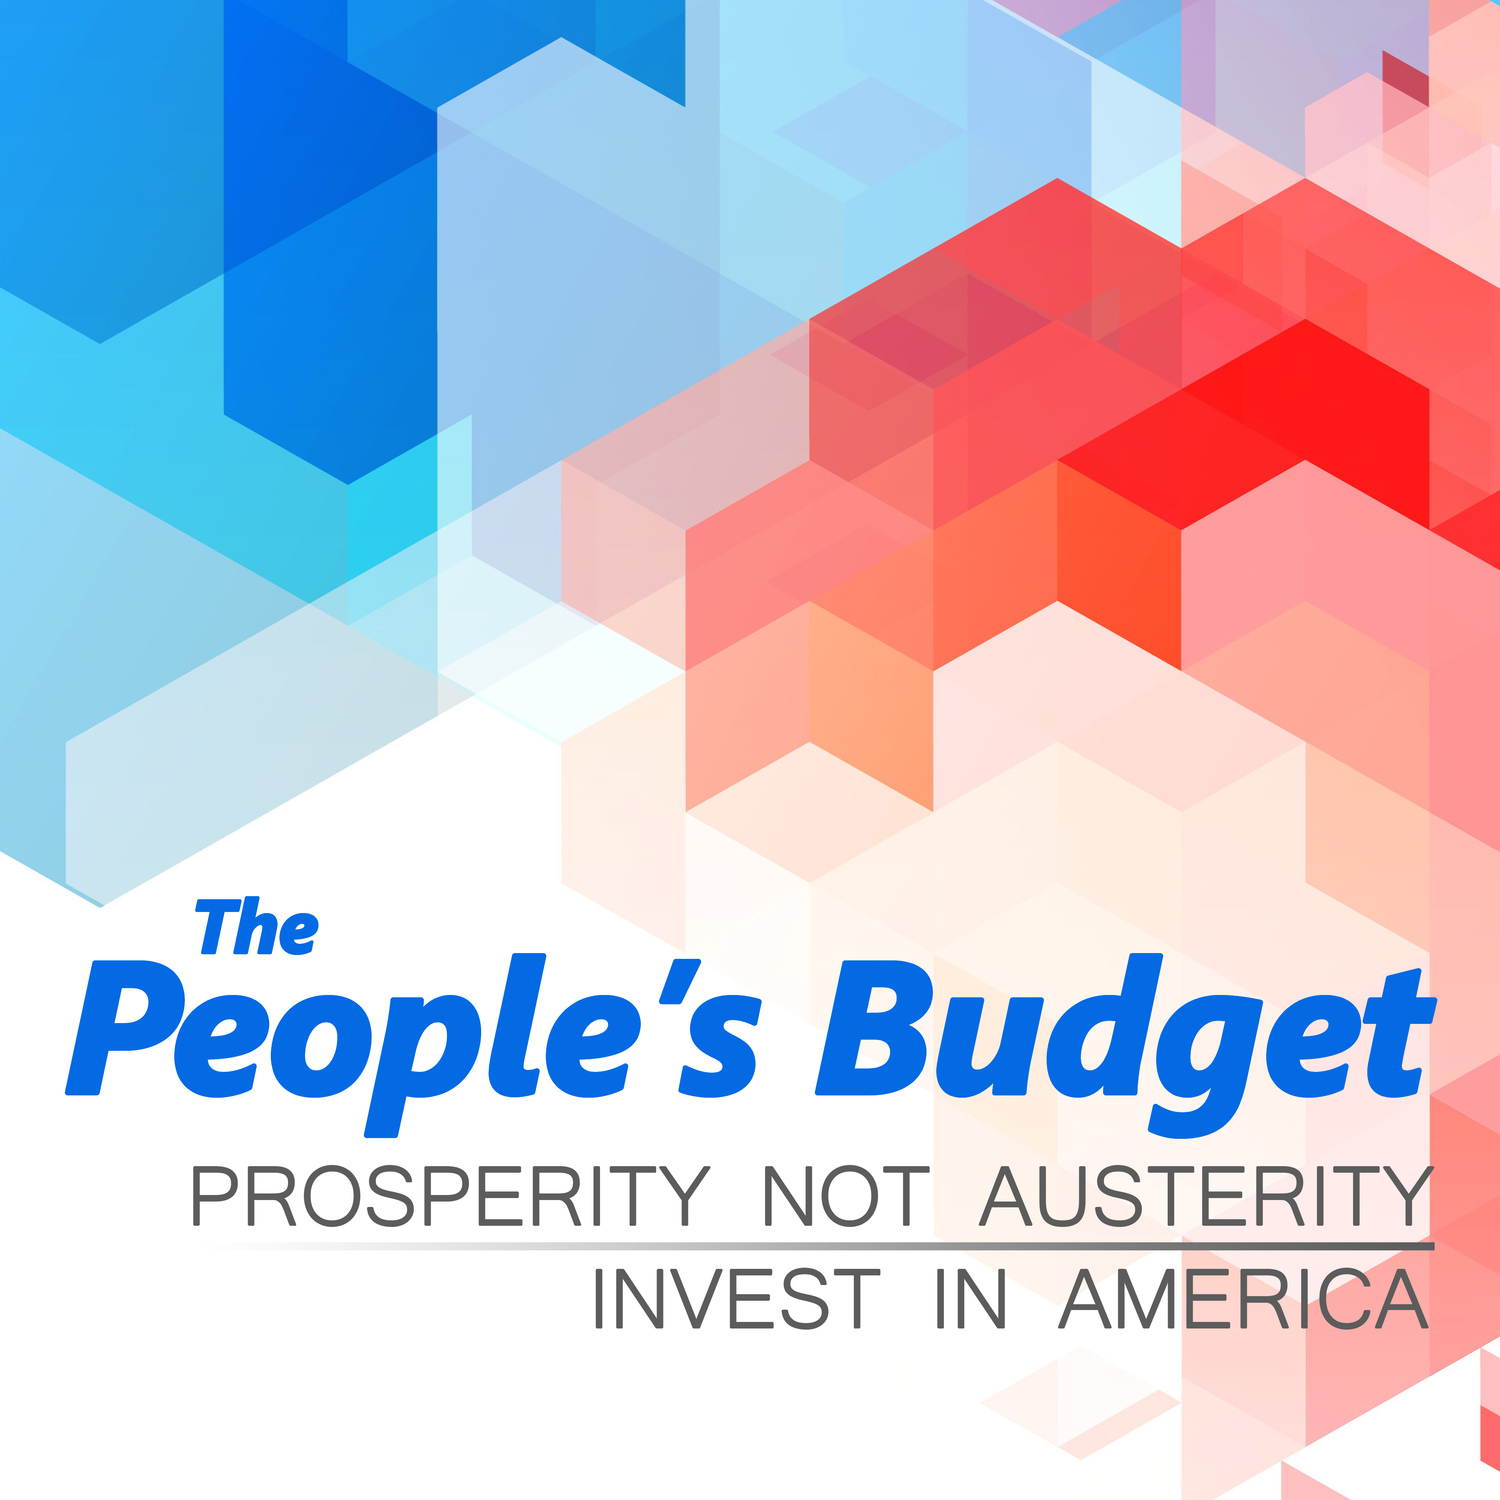 The People's Budget